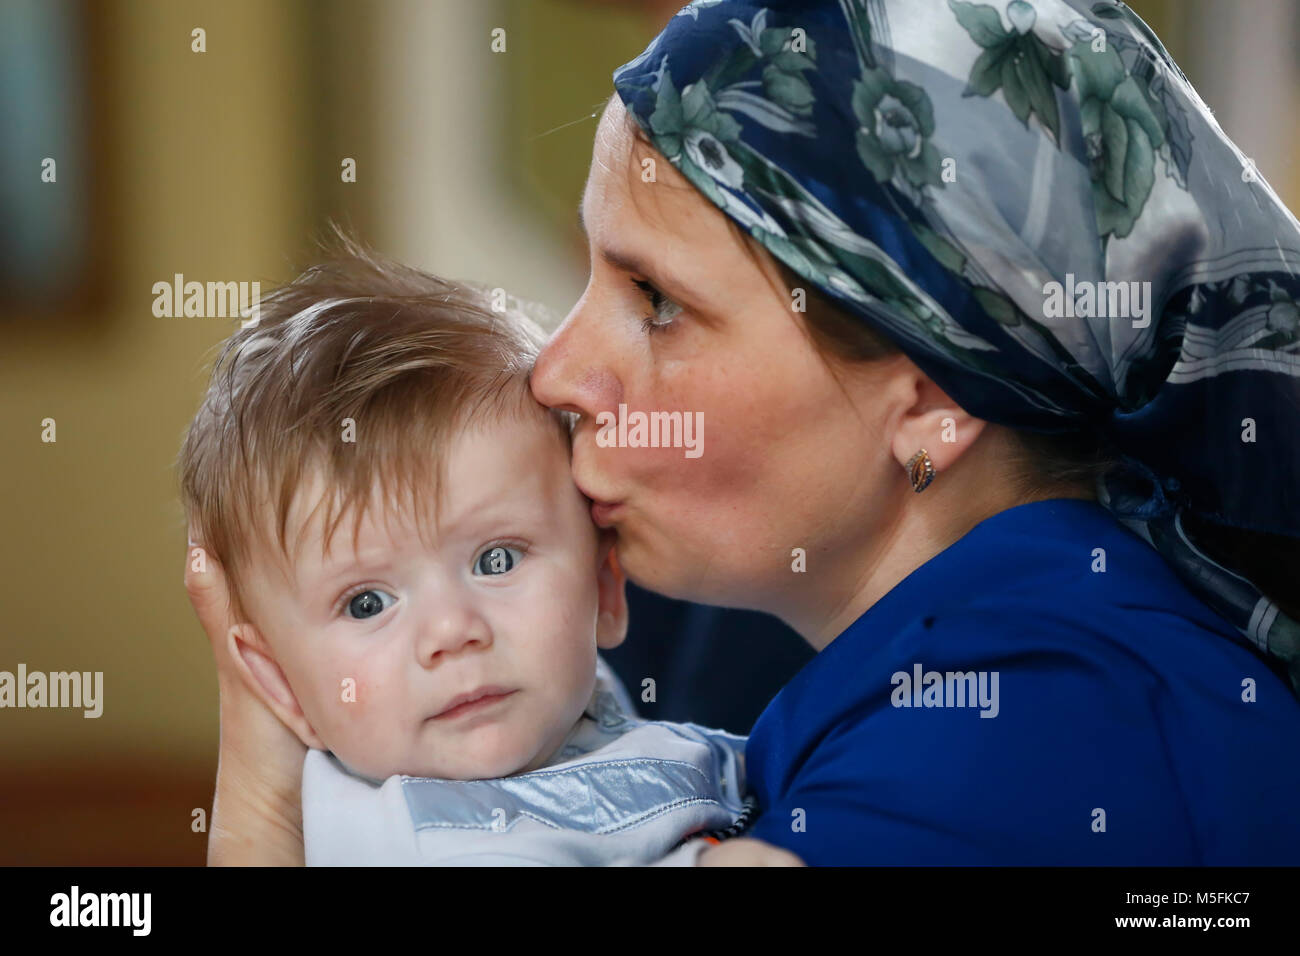 Belarus, the city of Gomel, St. Nicholas Monastery.June 11, 2016.Baptism of the Child.A mother kisses a baby.Mother - Stock Image